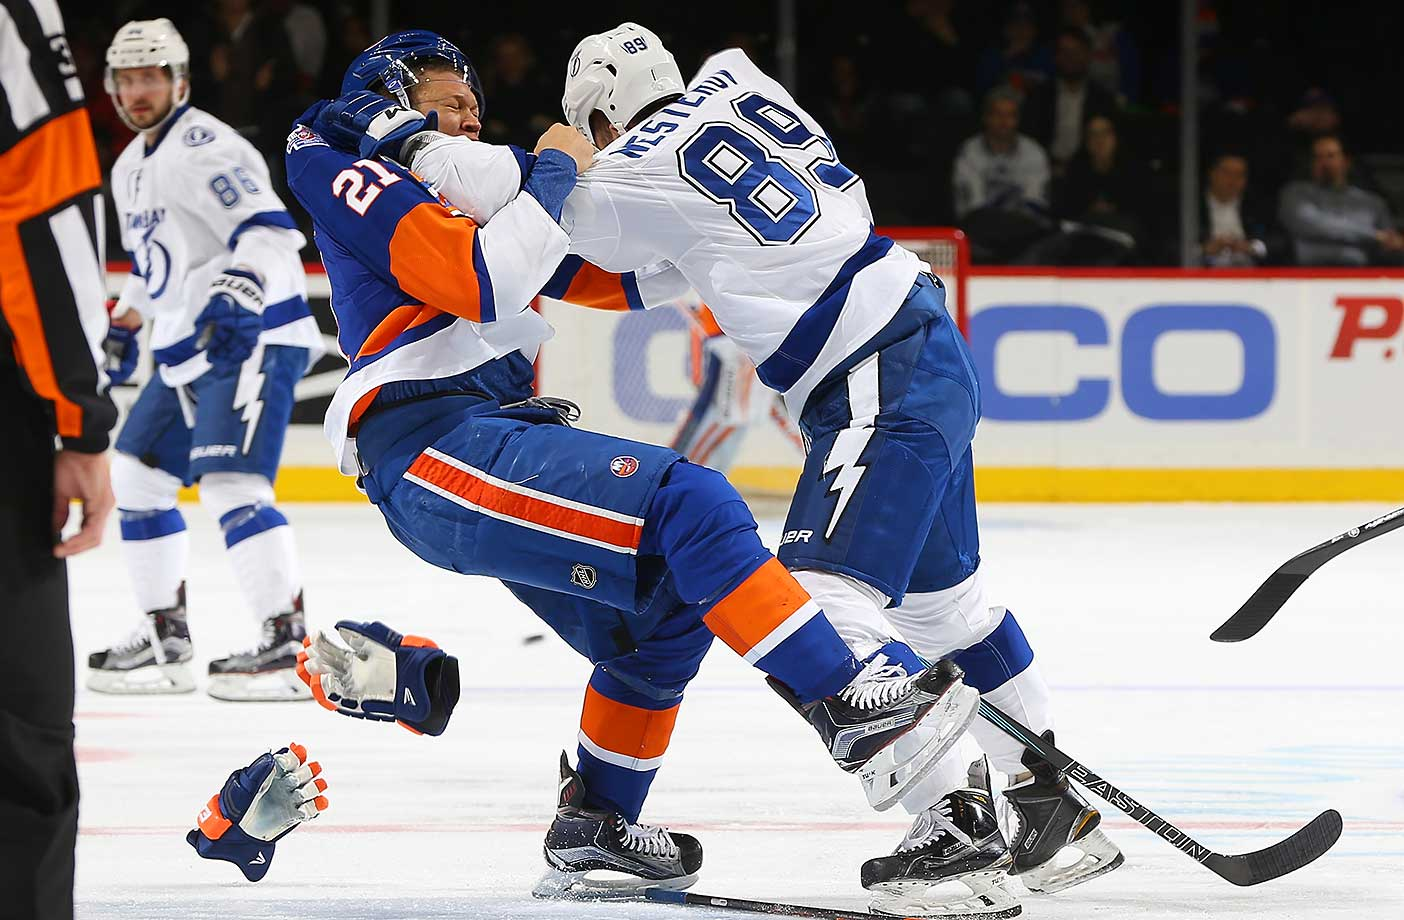 Kyle Okposo of the New York Islanders gets tangled up with Nikita Nesterov of the Tampa Bay Lightning.